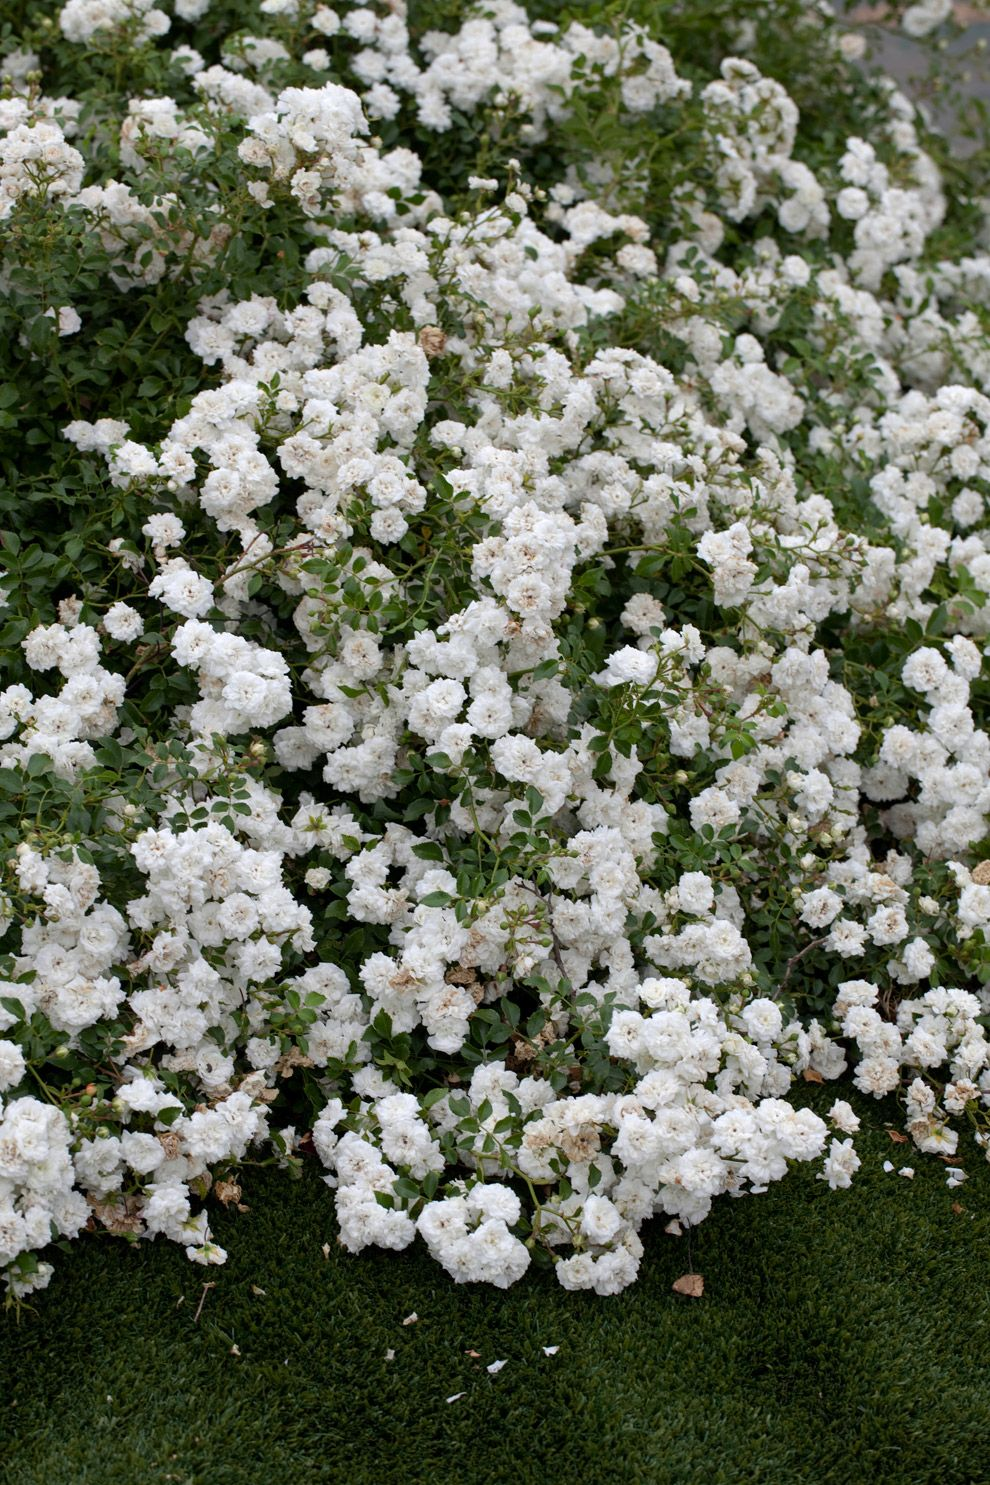 Icy White Drift Rose Cross Between Full Sized Ground Cover Roses